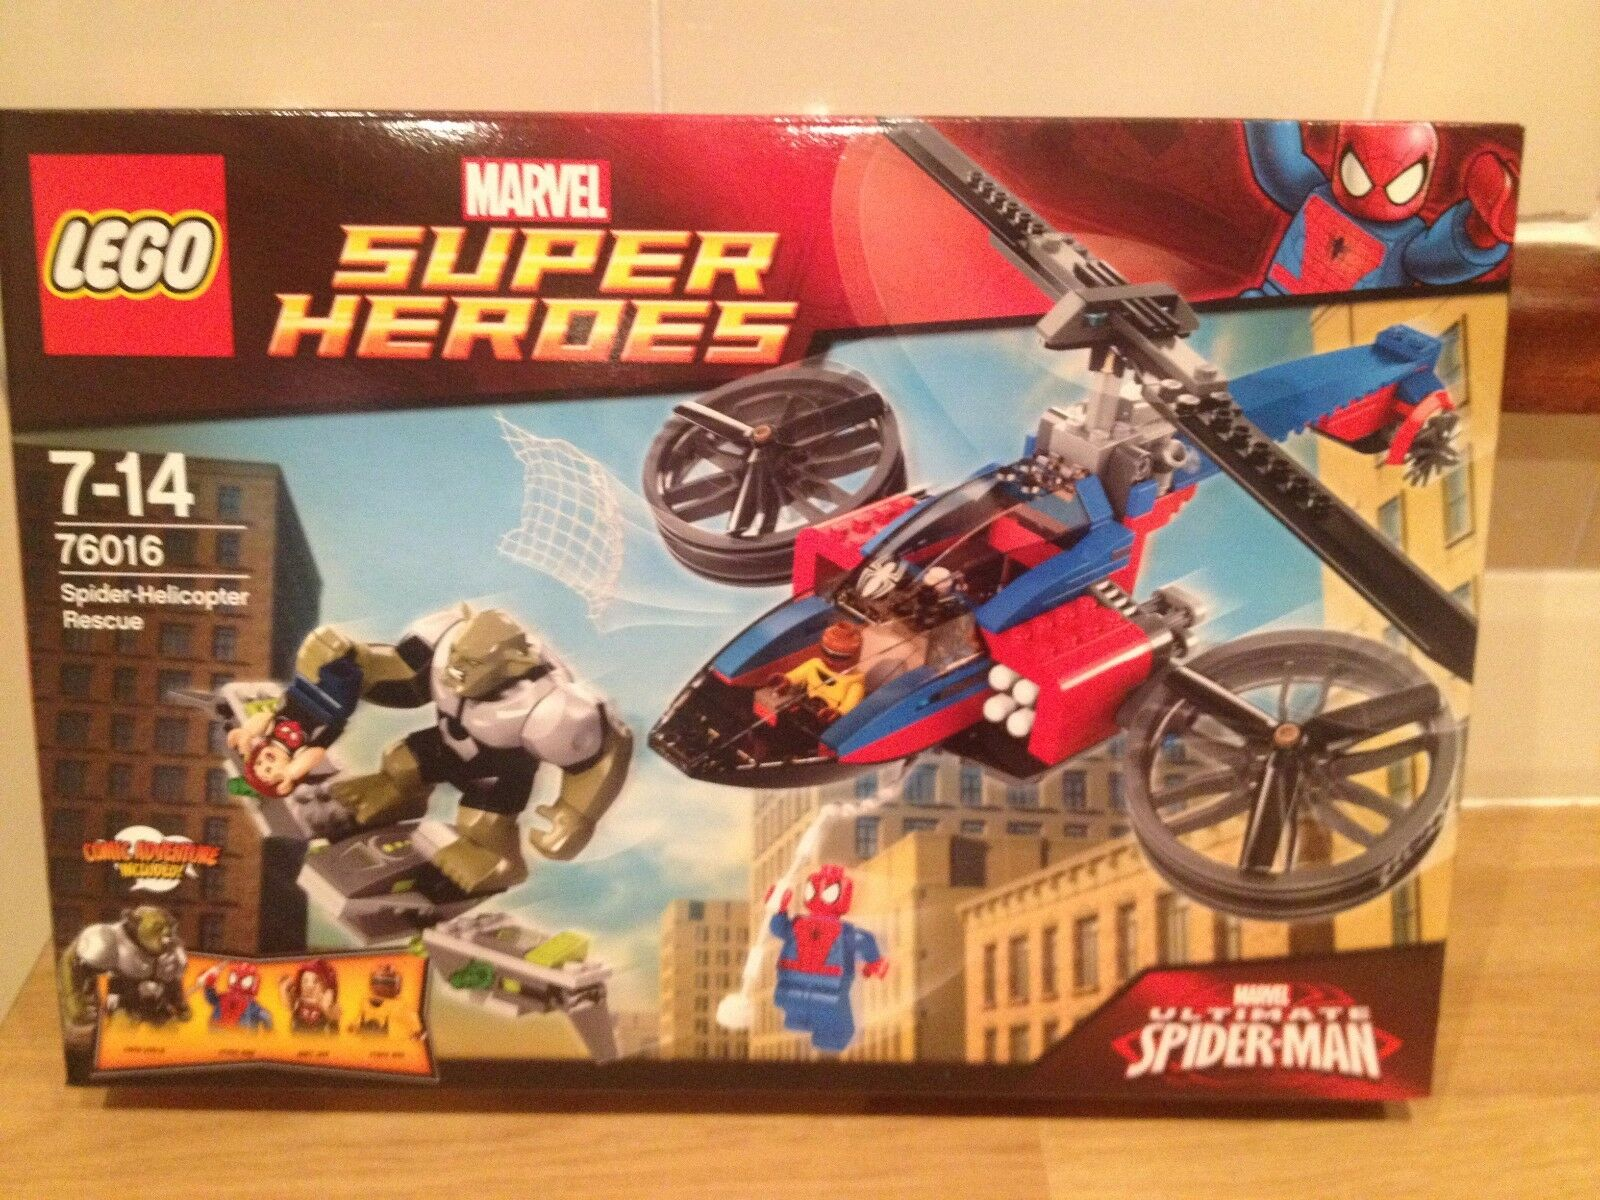 LEGO  Helicopter Spiderman 76016 Spider Helicopter  Rescue Brand new,factory sealed 33dbeb